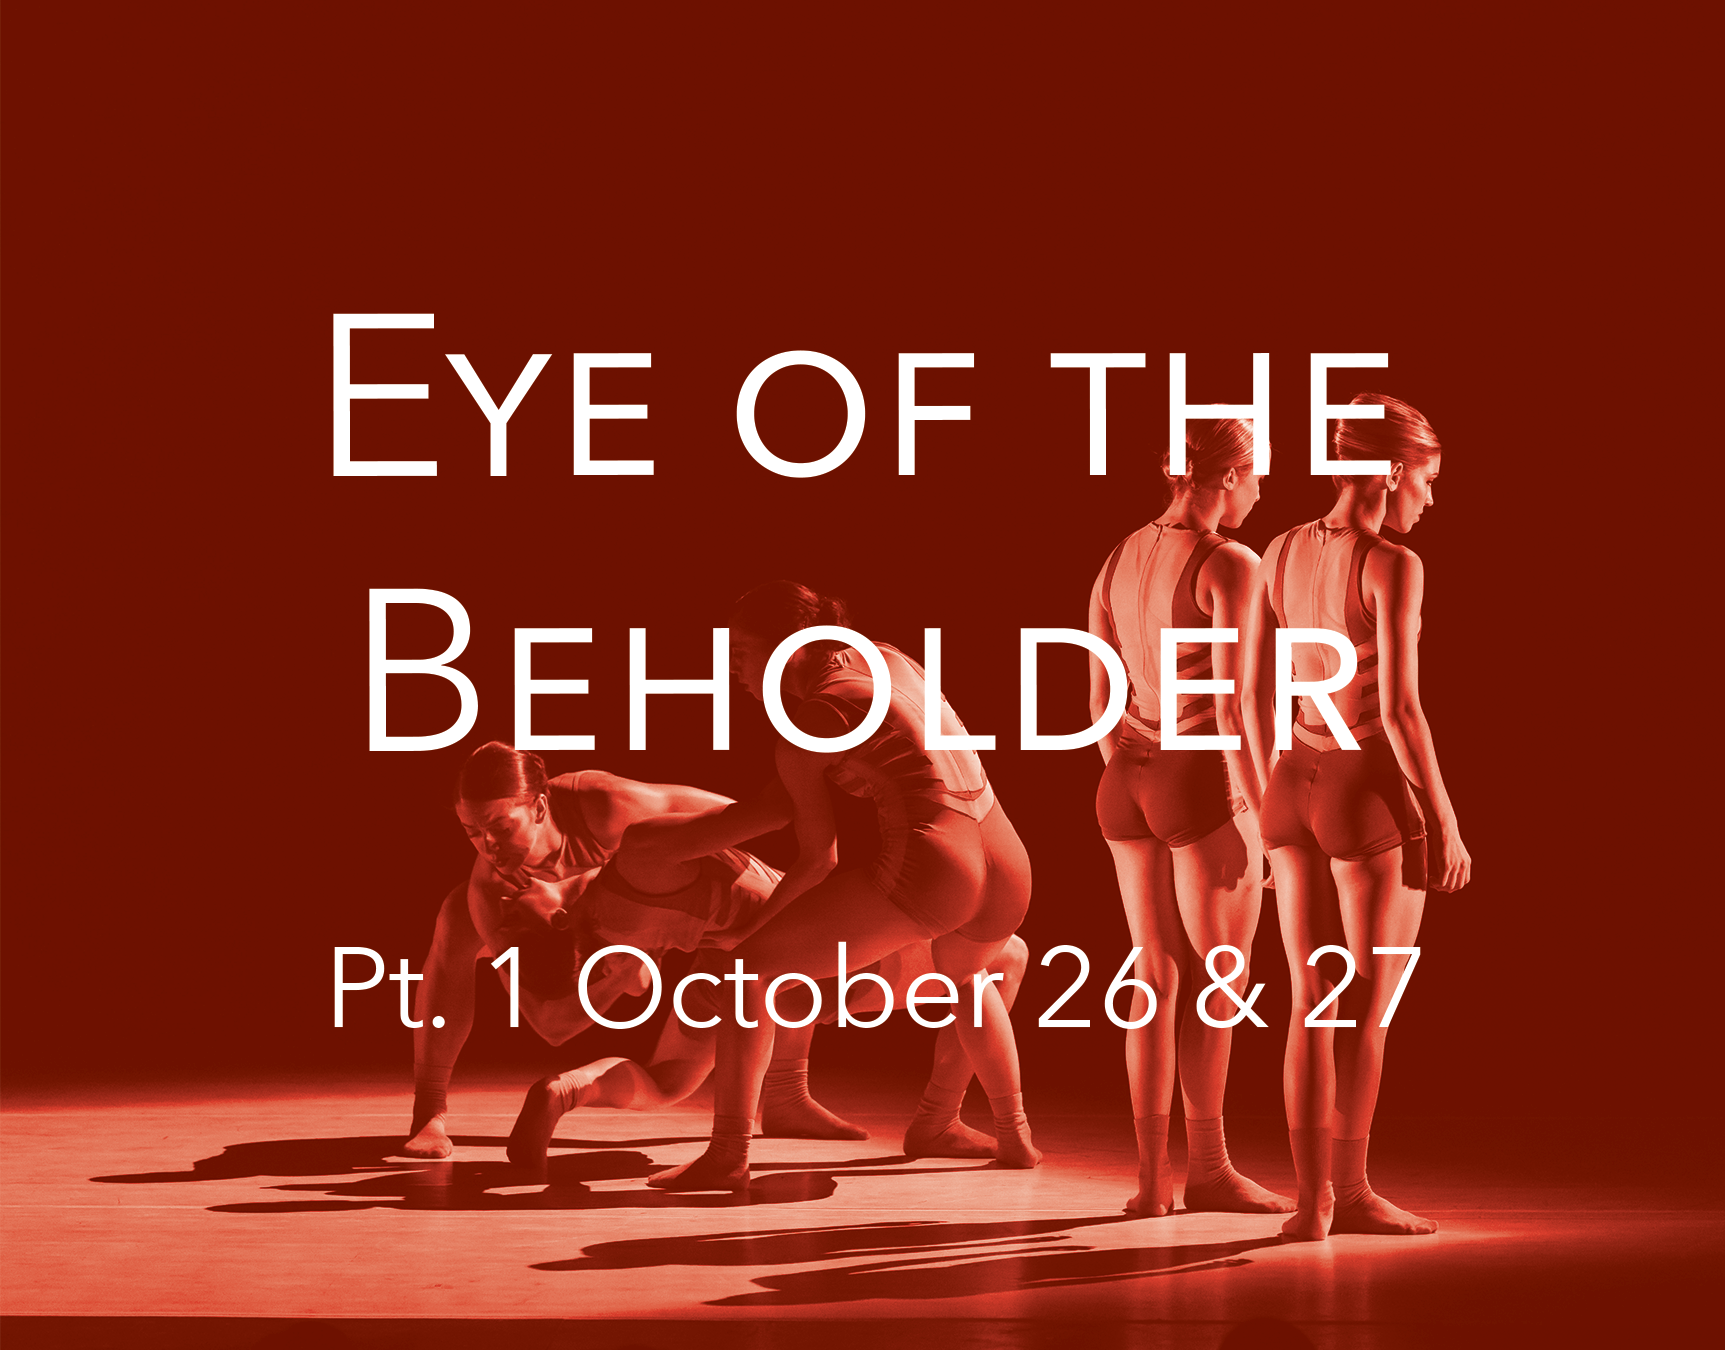 Eye of the Beholder (Pt. 1) - Saturday, October 26 | 8:00pmSunday, October 27 | 2:00pmCould the innate definition of truth and justice lie solely in the eye of the beholder? Join EDD Artistic Director, Stephanie Pizzo, and the acclaimed EDD dancers as they investigate perspective...how it shapes judgment and impacts culture and society. This two-part, site-specific work, at two uniquely different venues, Oakland University's Varner Recital Hall and the Lightbox in Detroit, reimagines what we think of as performance space. Watch contemporary dance transform both environments to create two unique perspectives with a common theme. Join in the artistic process for an interactive experience that will impact the perspective of Part 2 at the Lightbox. The program also features the mesmerizing premieres of dances created by renowned choreographers, Christian Denice and Baira.$18 General Admission$14 Senior (Ages 62+)$10 StudentOakland University371 Varner Dr, Rochester, MI 48309